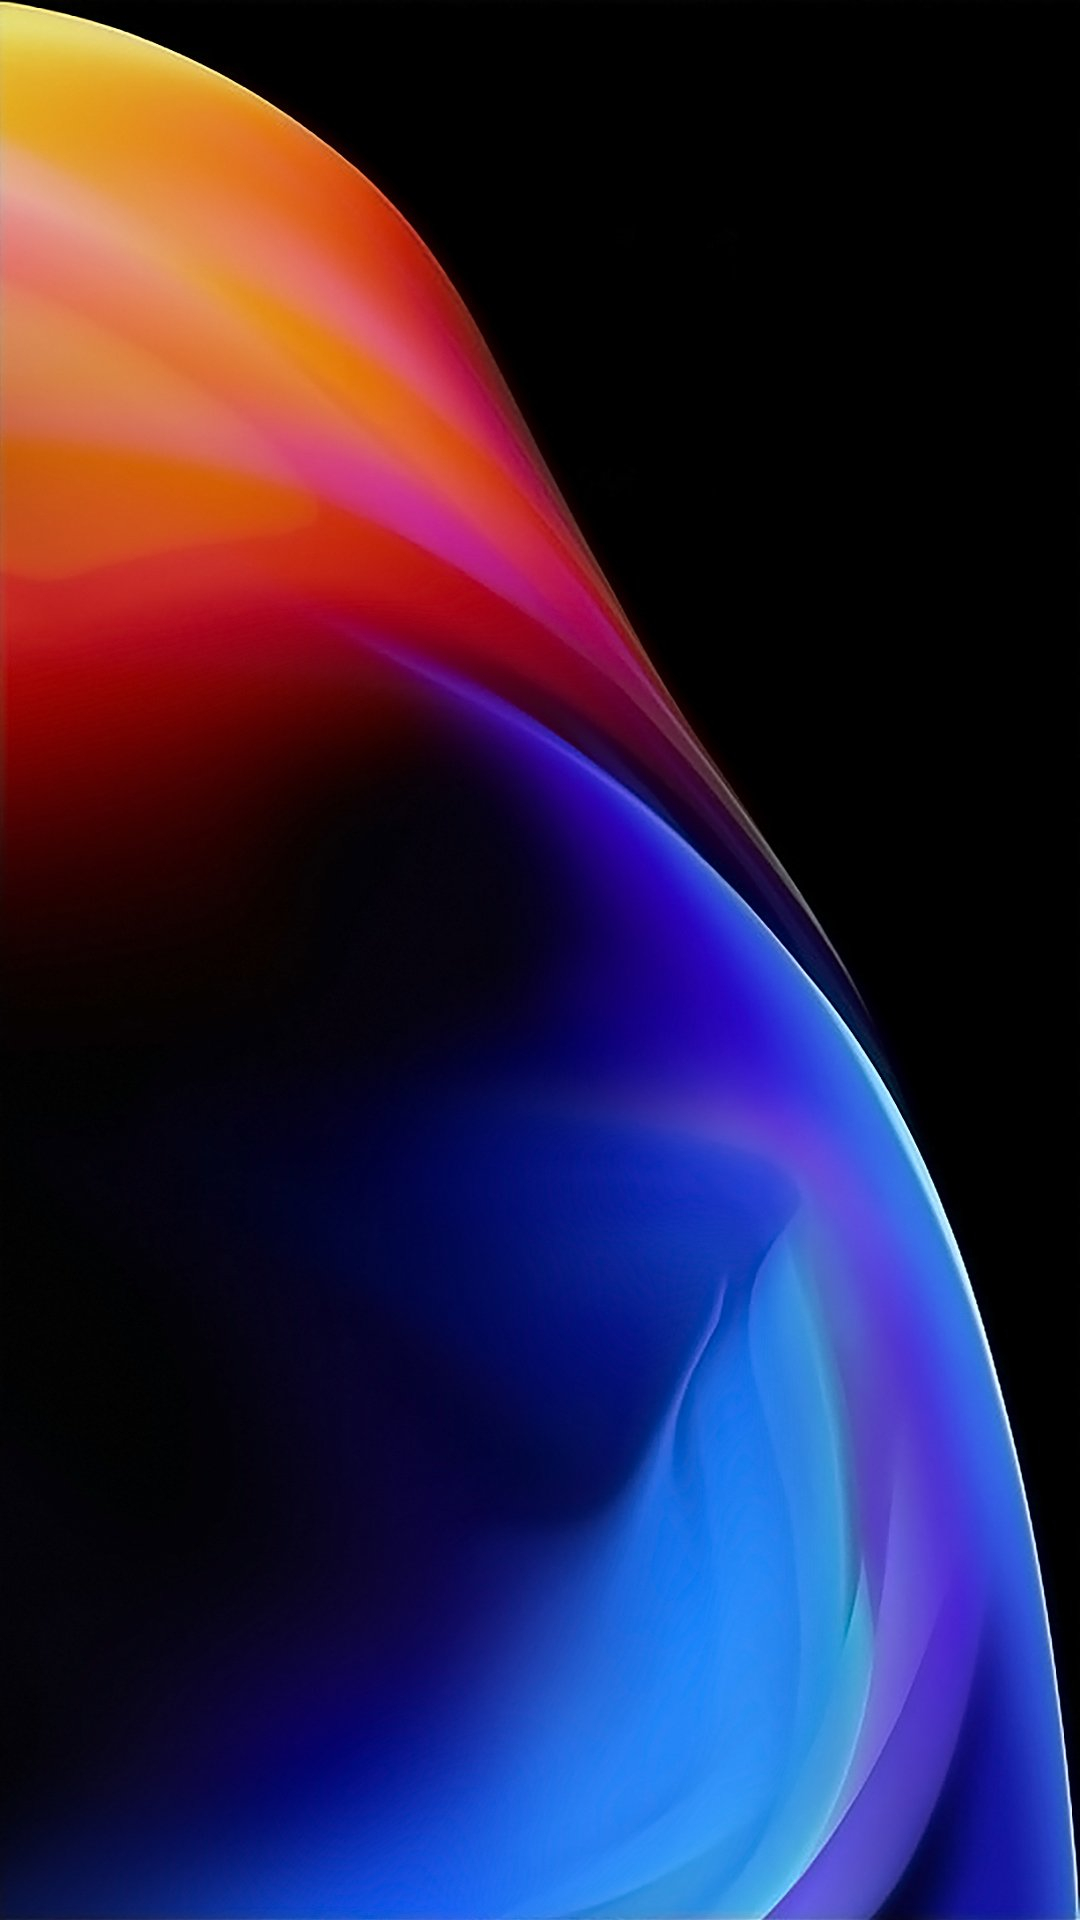 wallpaper from productred iphone 8 marketing materials